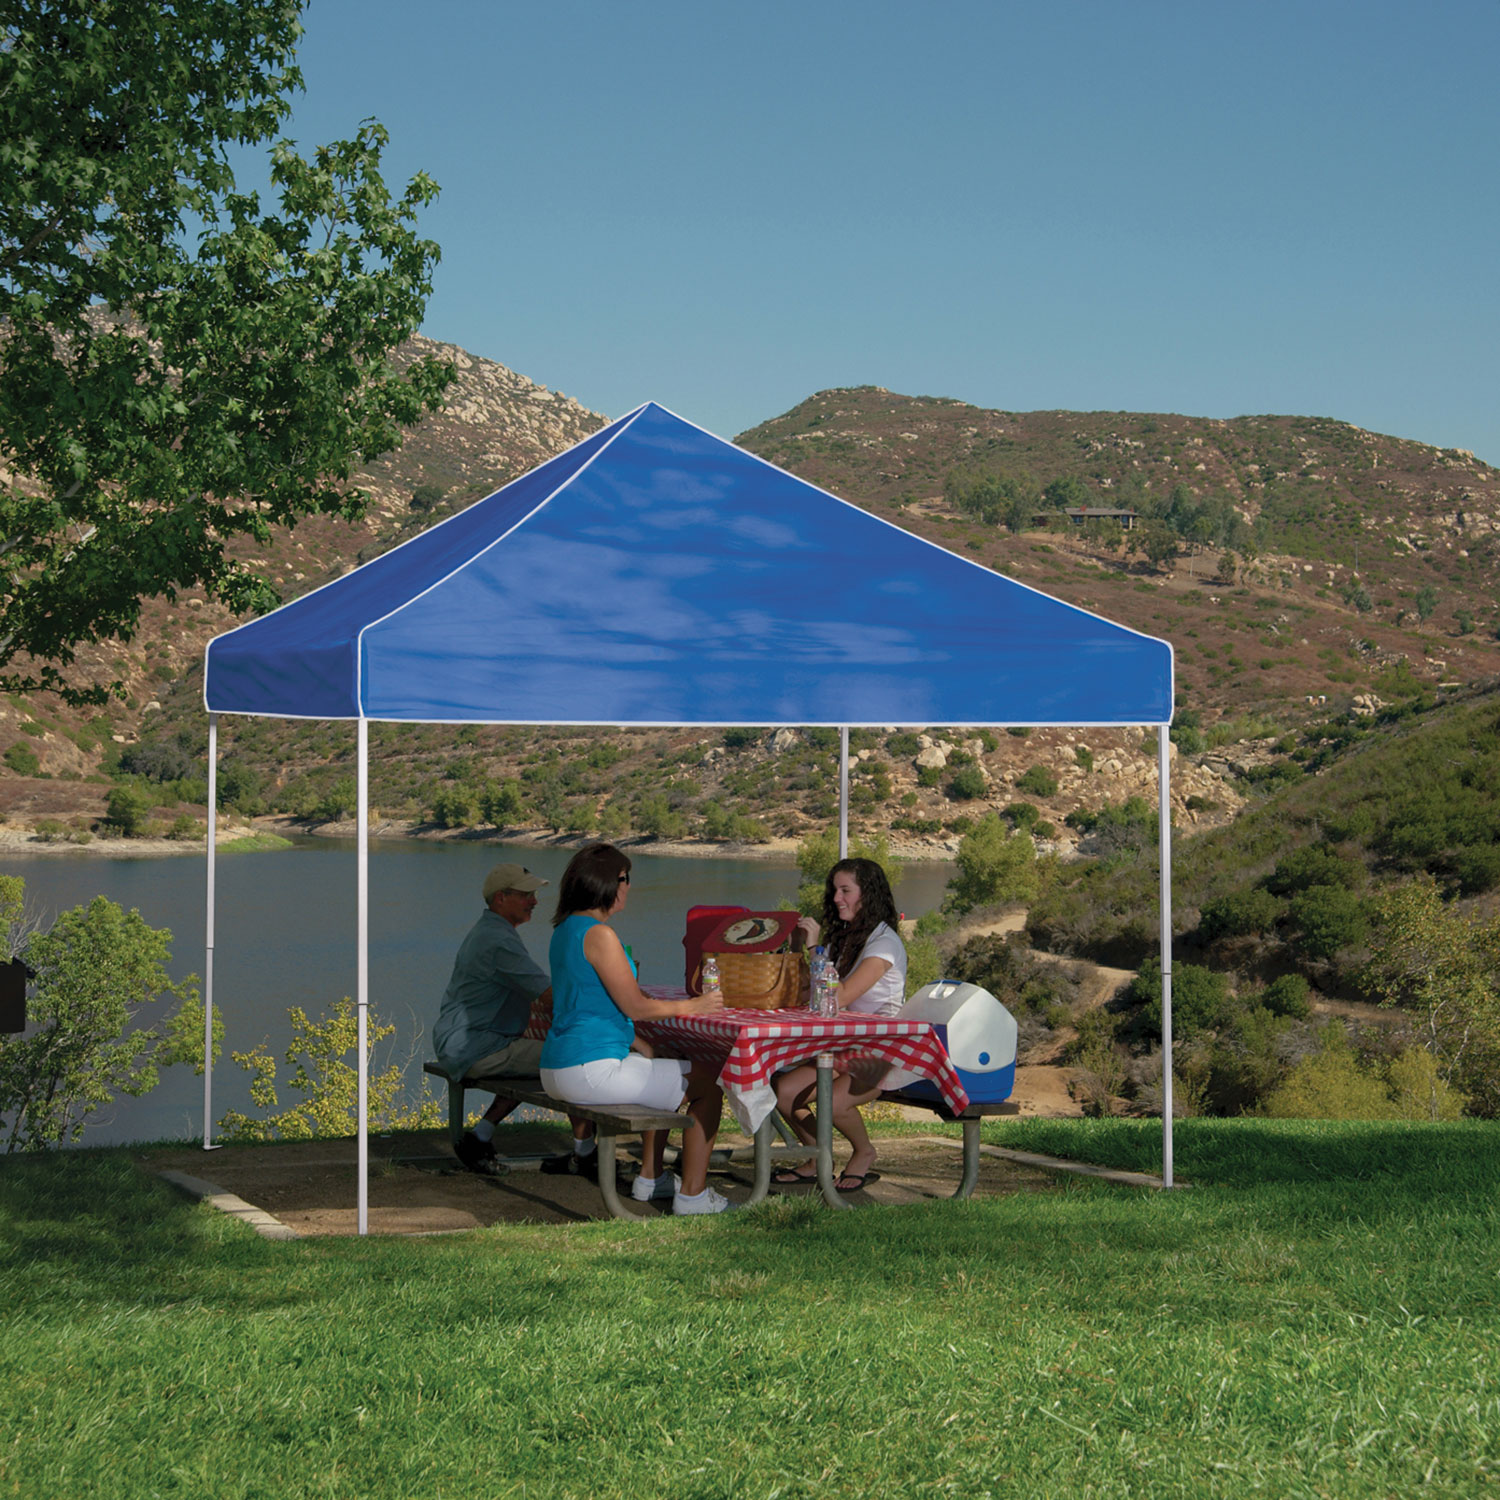 Z-Shade 10 x 10 Foot Everest Instant Canopy Outdoor Camping Patio Shelter,  Blue